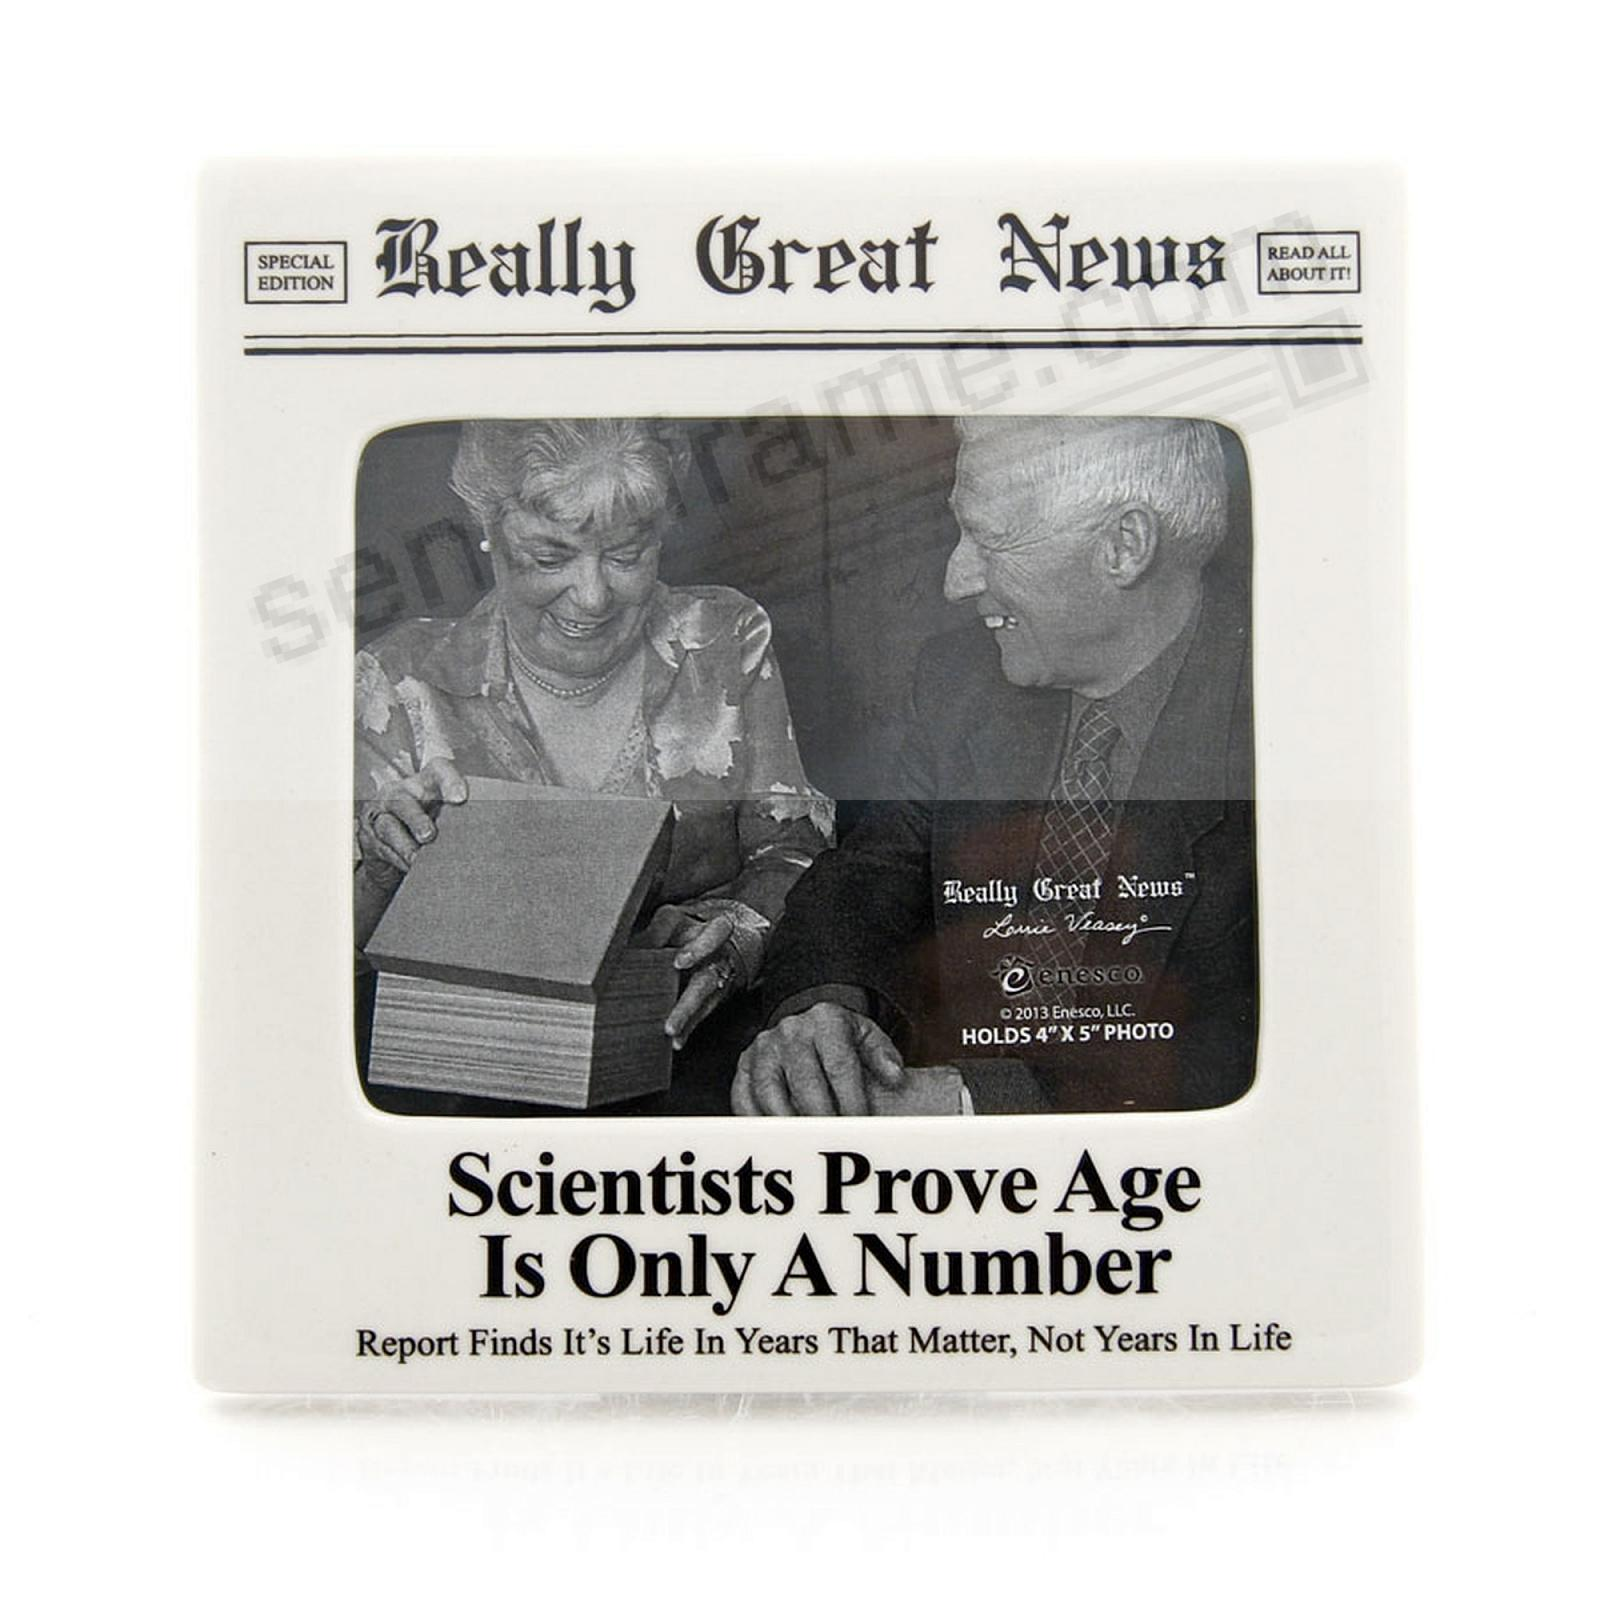 AGE IS ONLY A NUMBER frame by Really Great News®